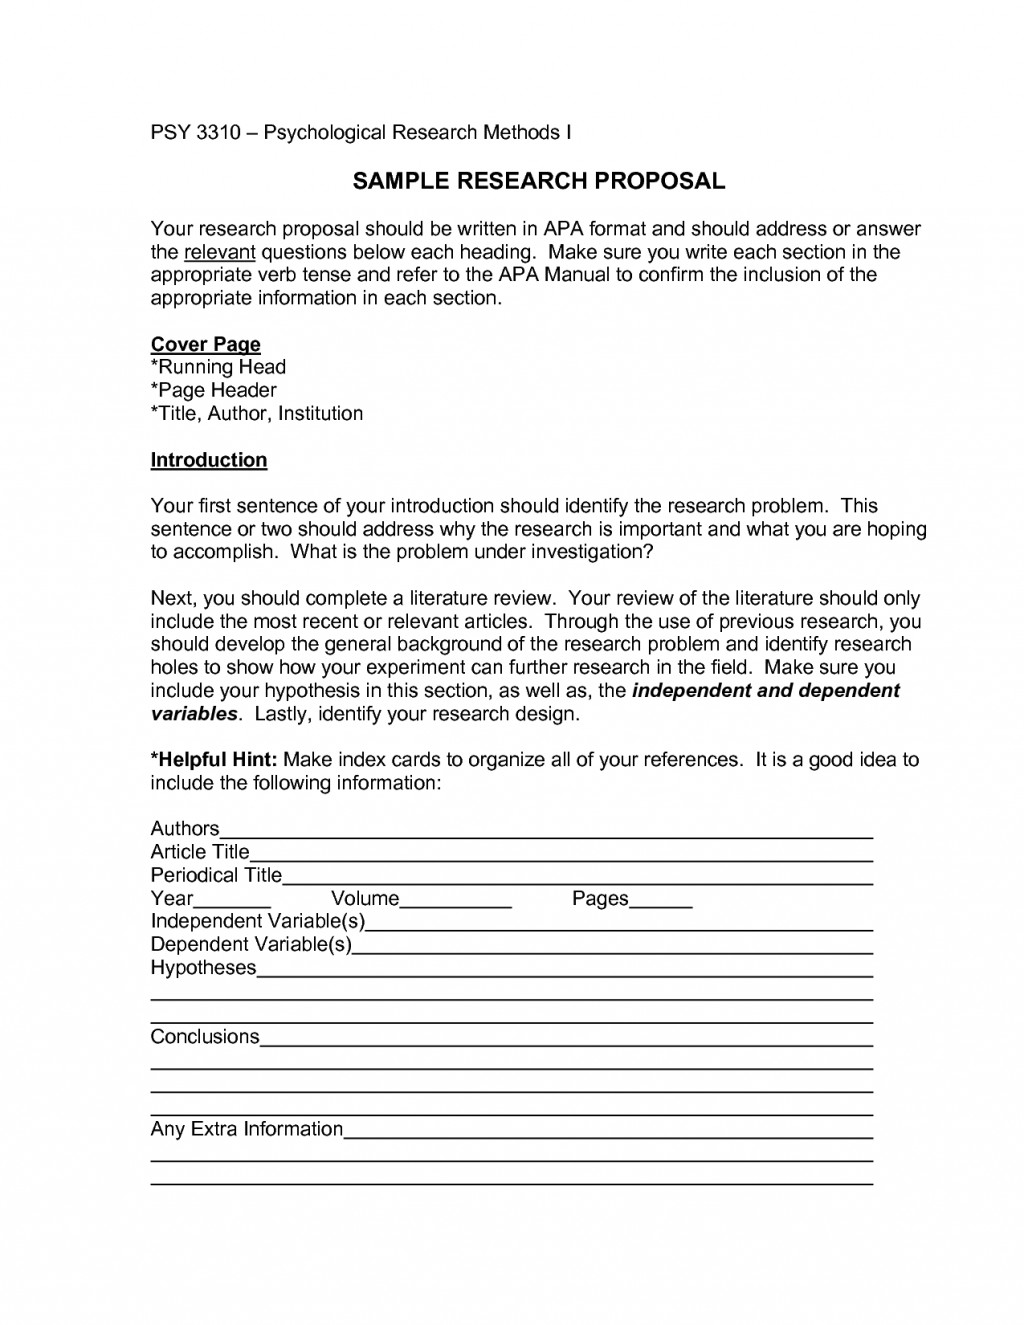 006 Apa Research Proposal Template Best Style Format With Sample Essay Writing Psychology Paper Of Beautiful Animal Testing Thesis Large